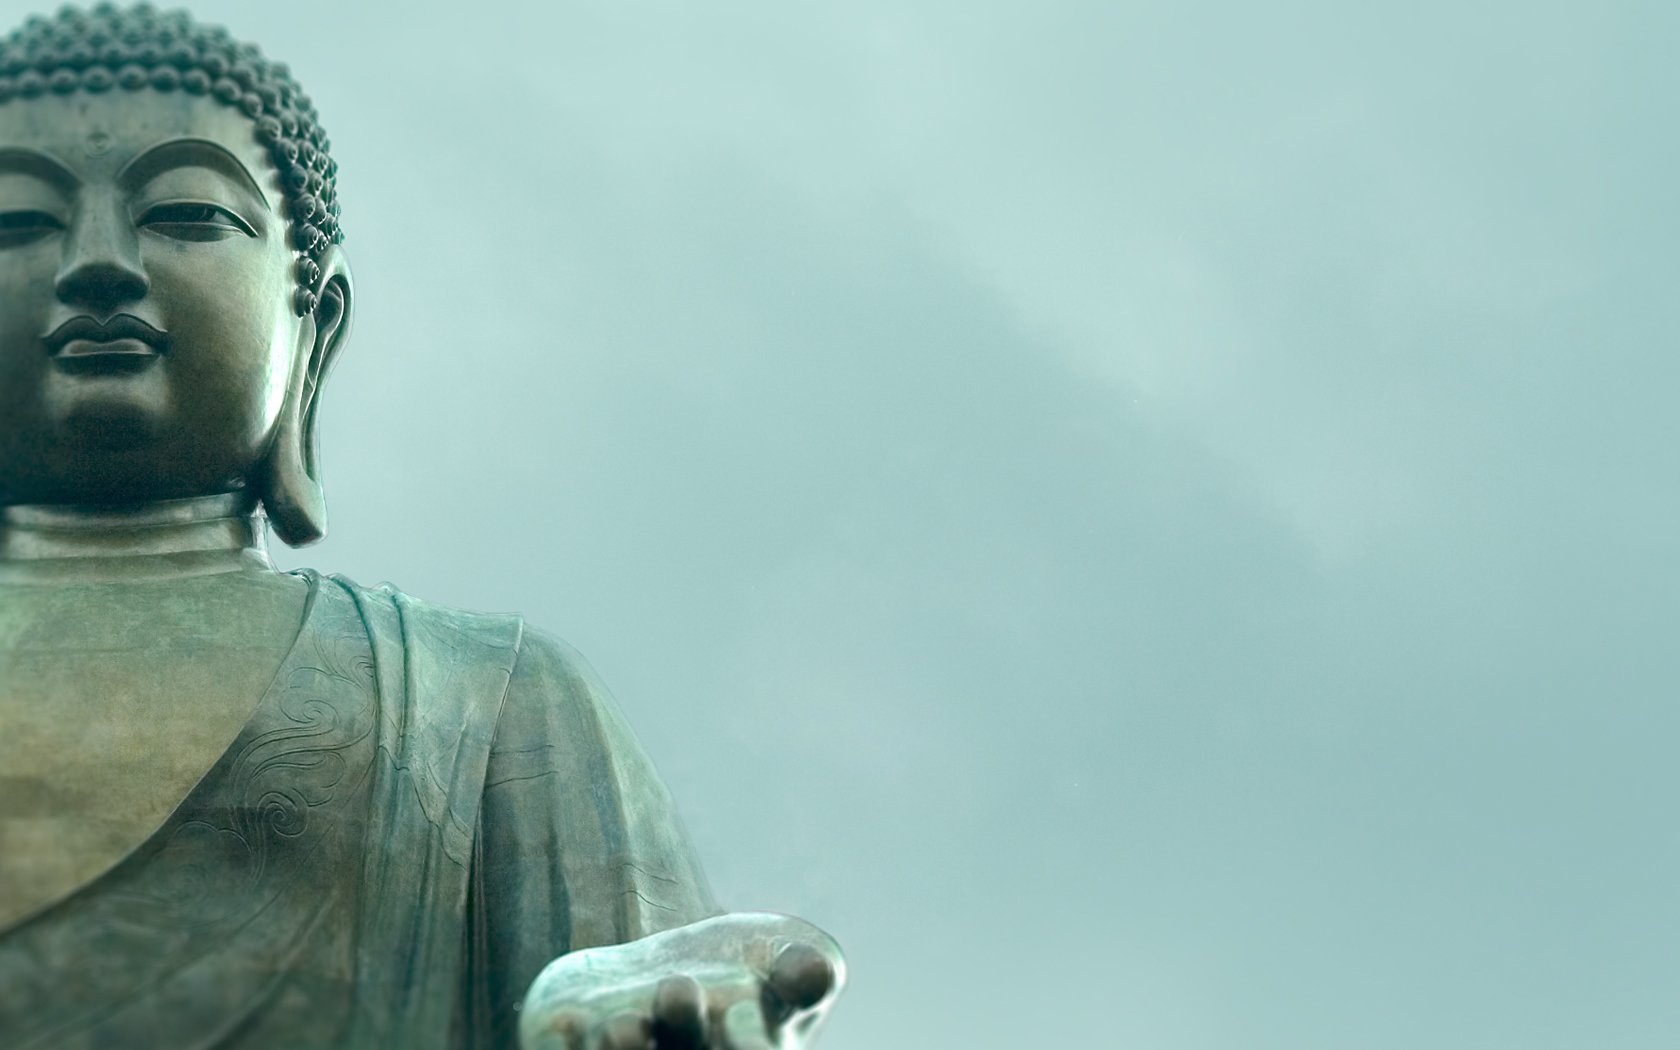 Zen Buddhism Wallpaper Buddhist wallpaper 1680x1050